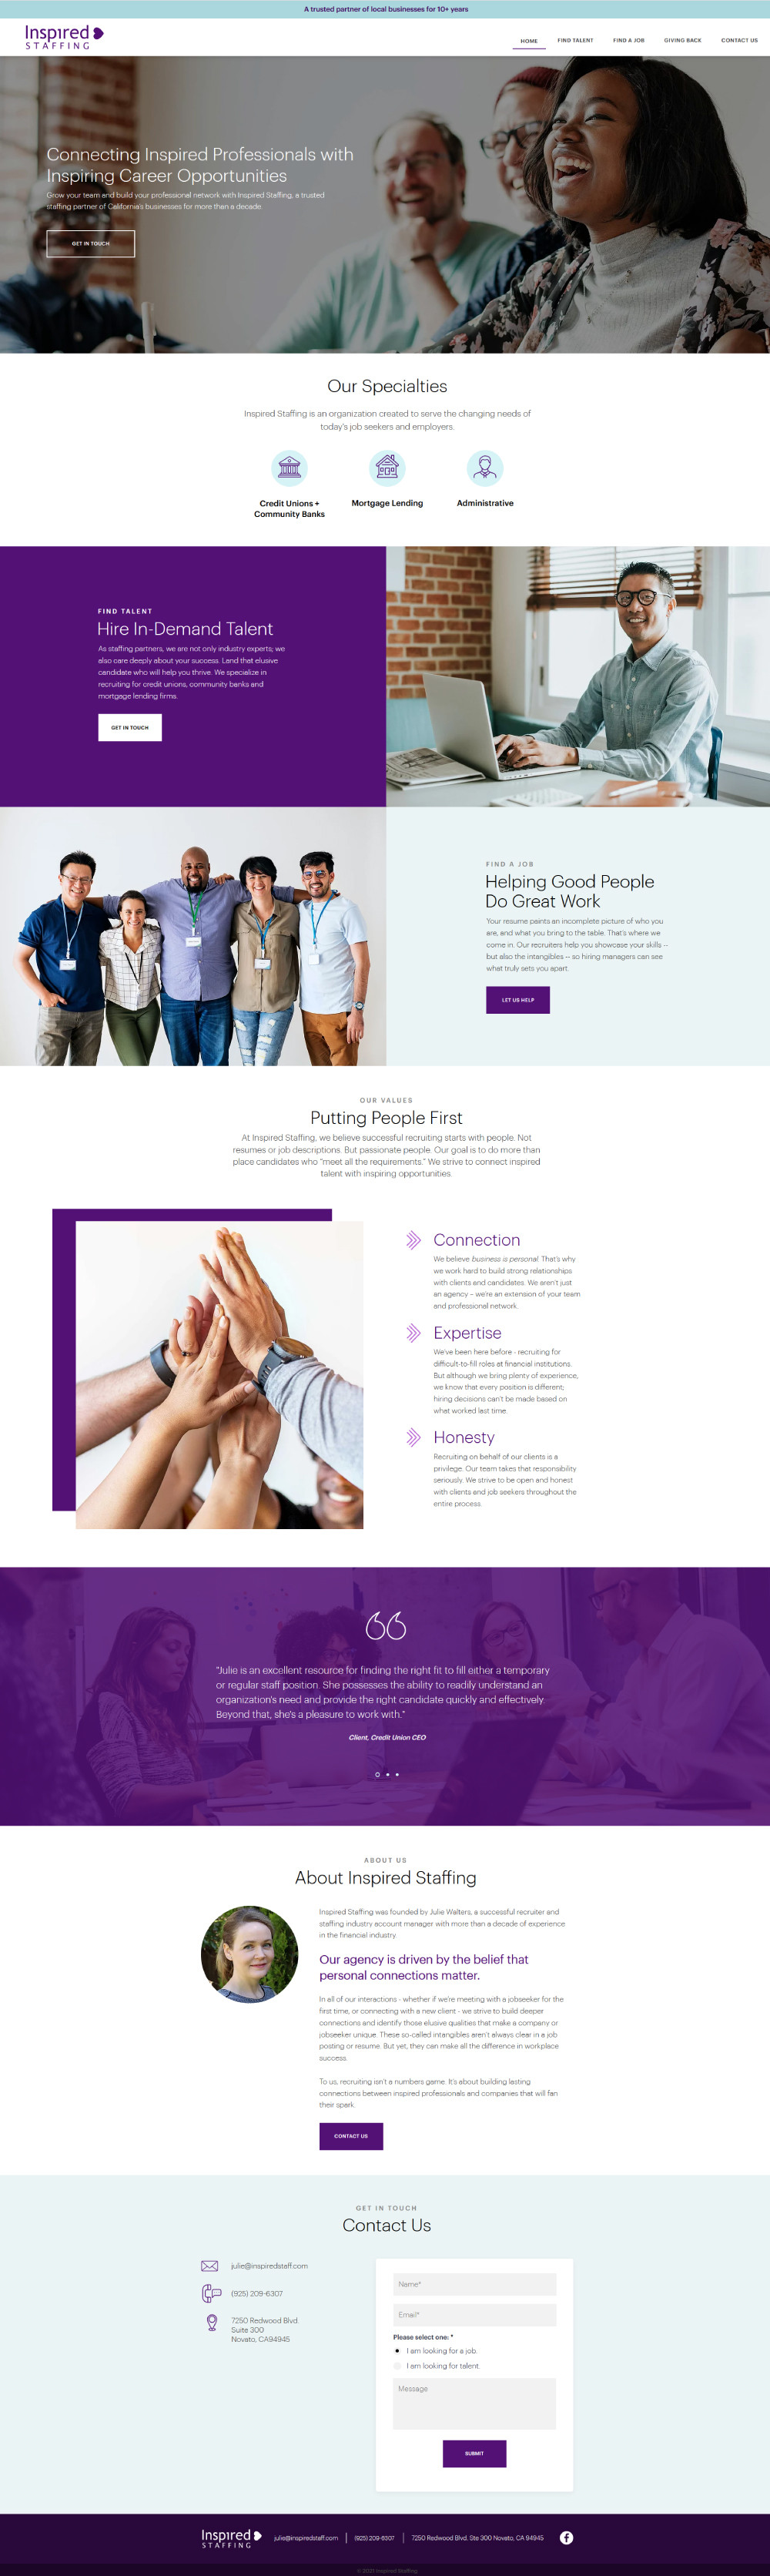 Home page of Inspired Staffing